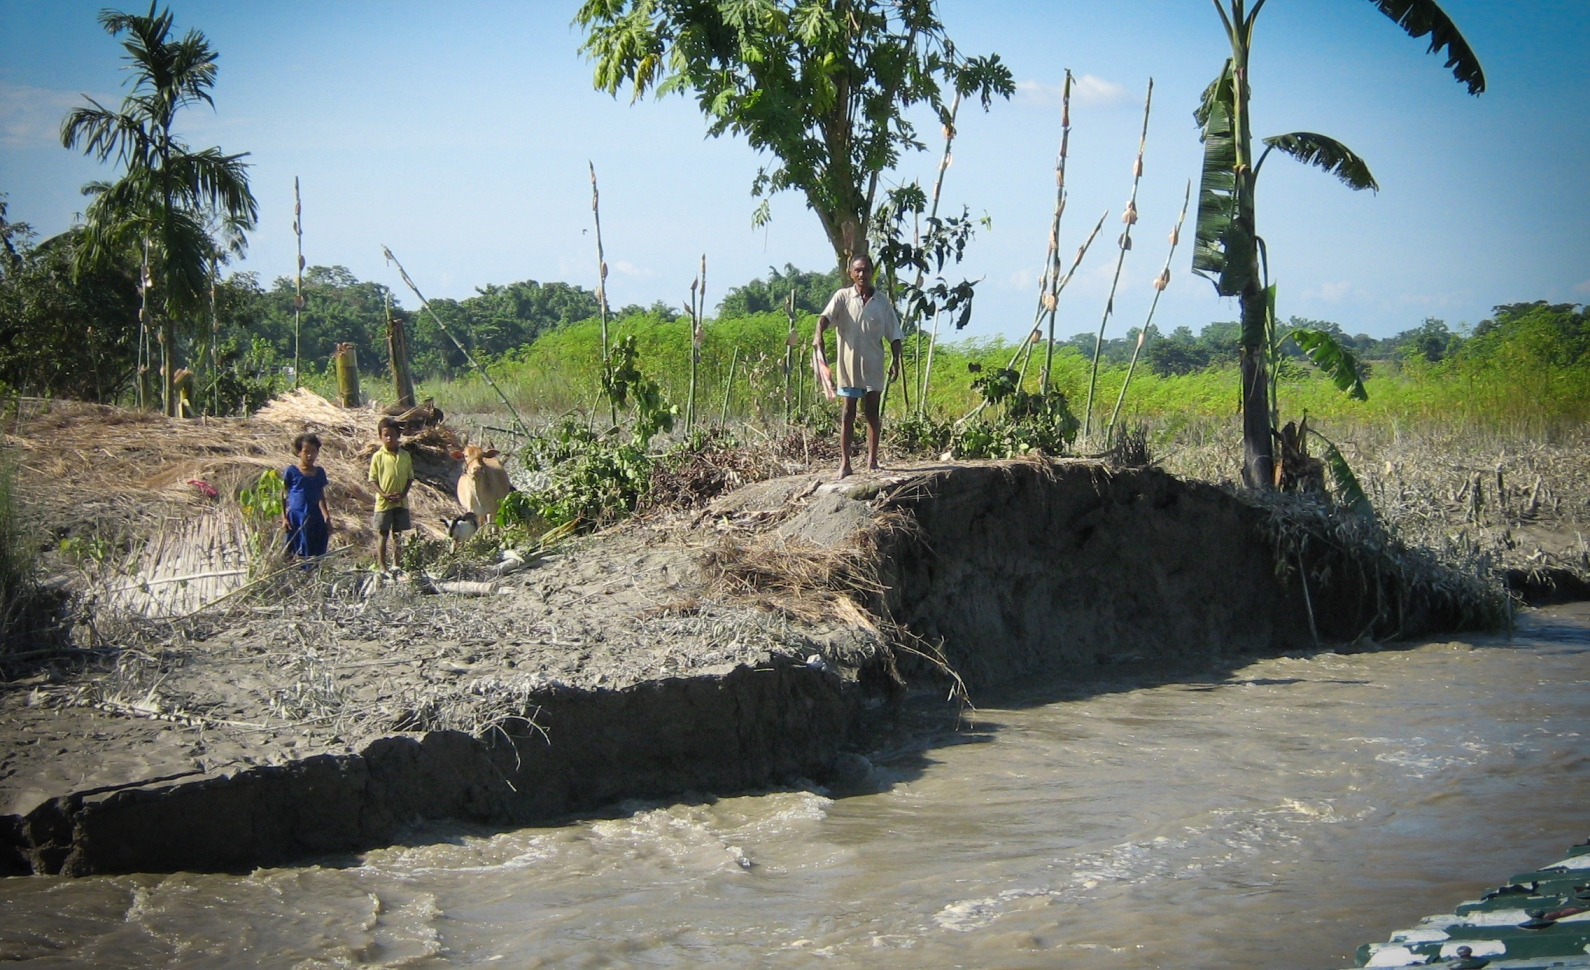 River erosion is a serious threat to the Mising tribe of Majuli. Photo by Mitu Khataniar